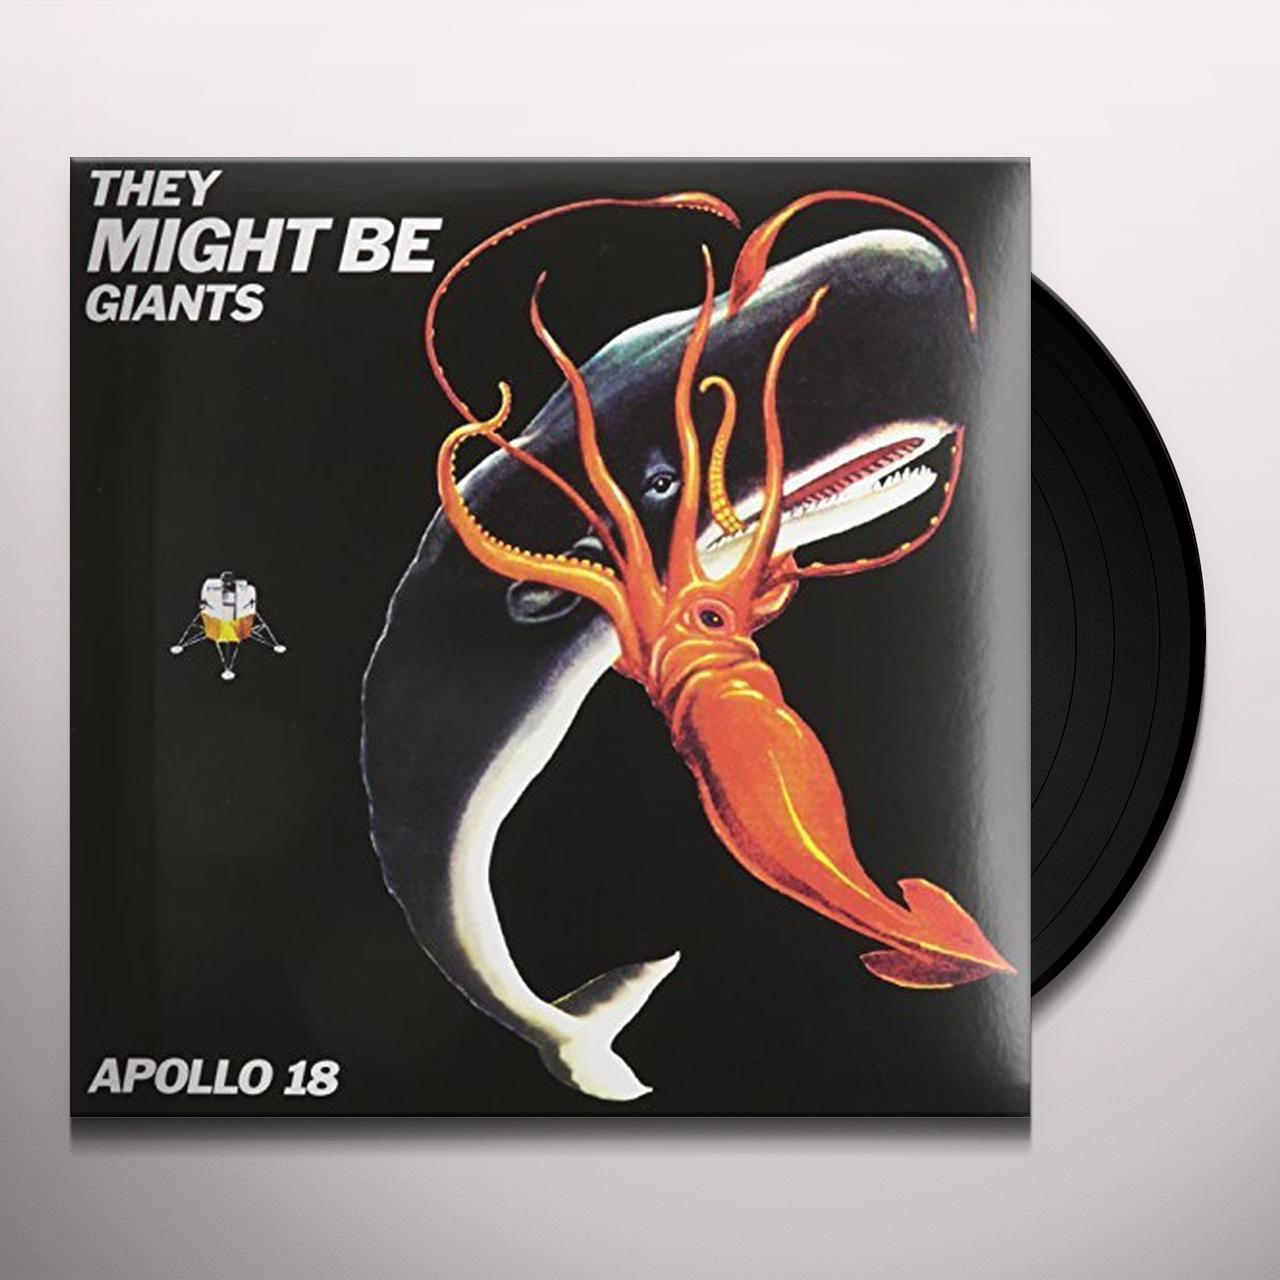 A18 cover and disc.jpg